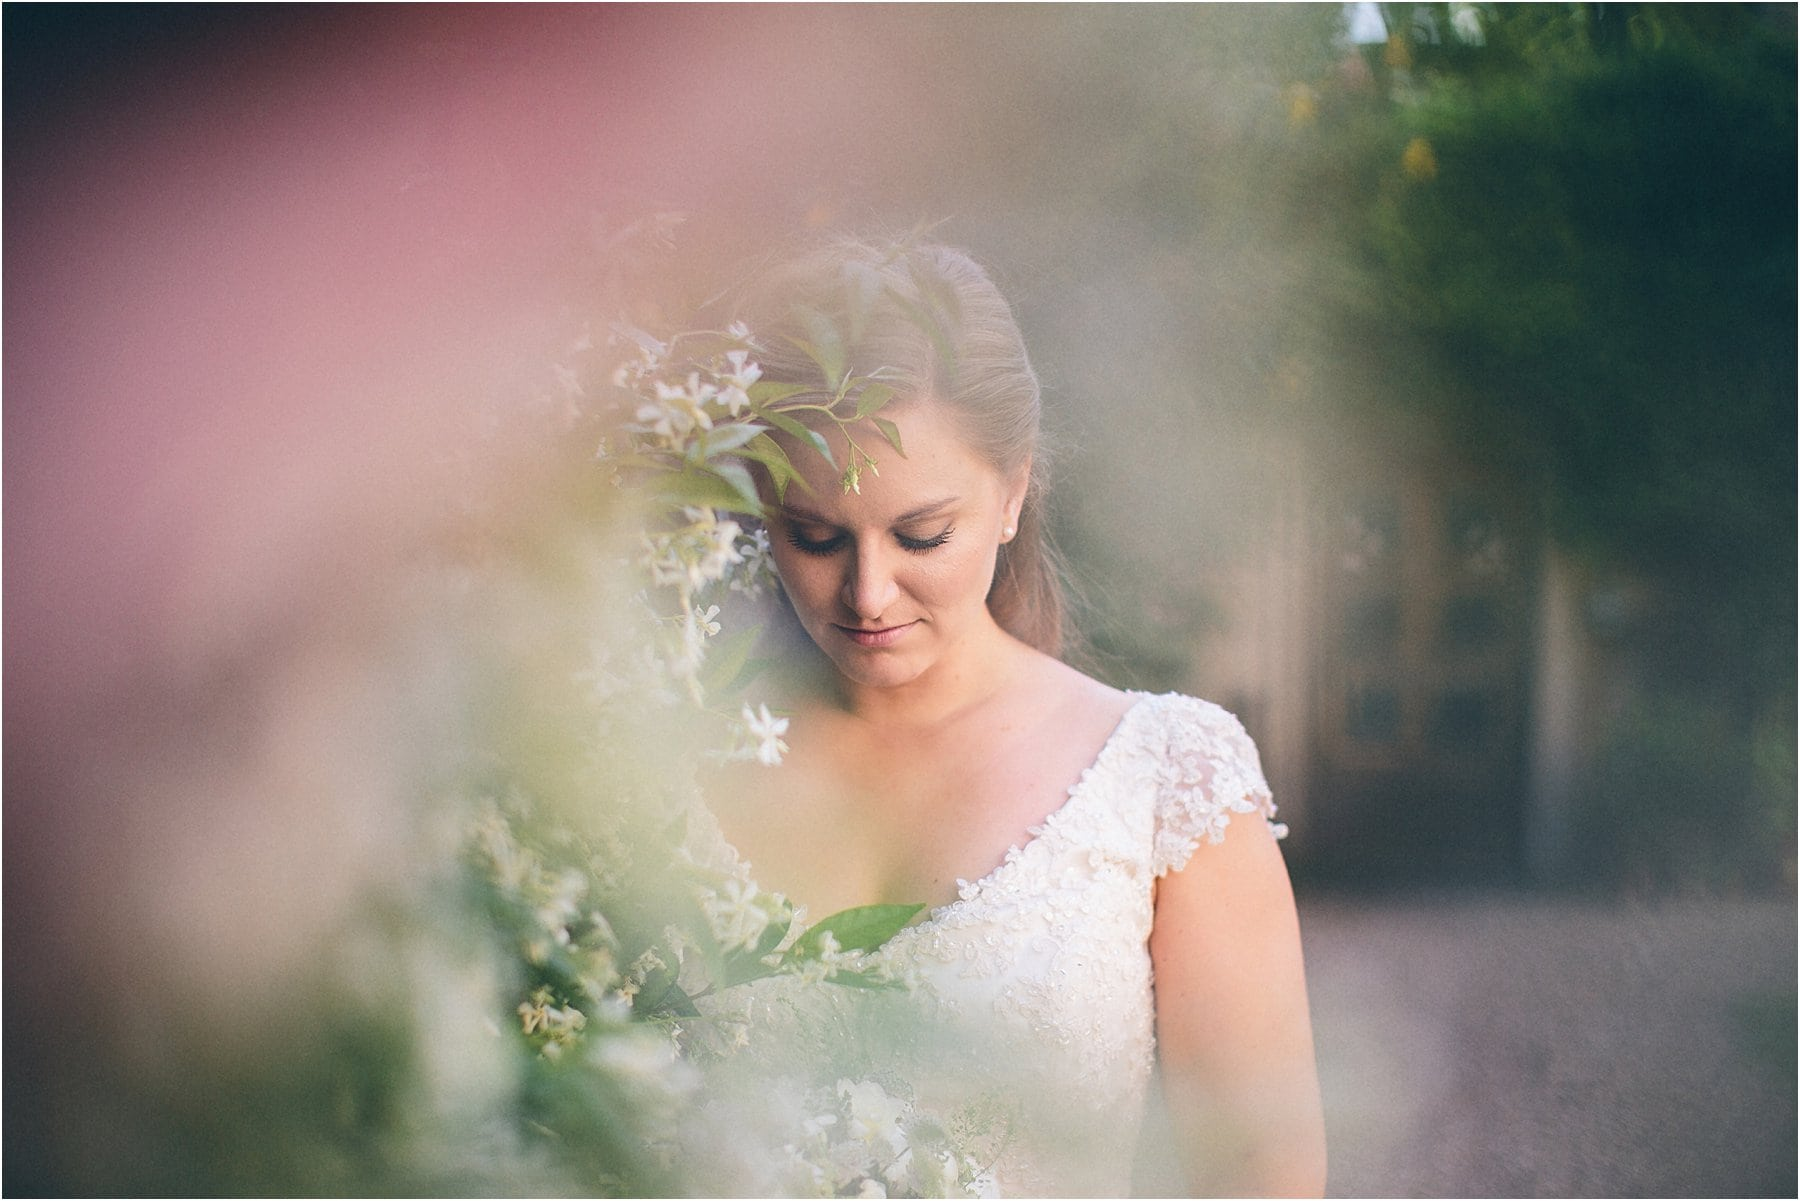 Middle_Temple_Wedding_Photography_091